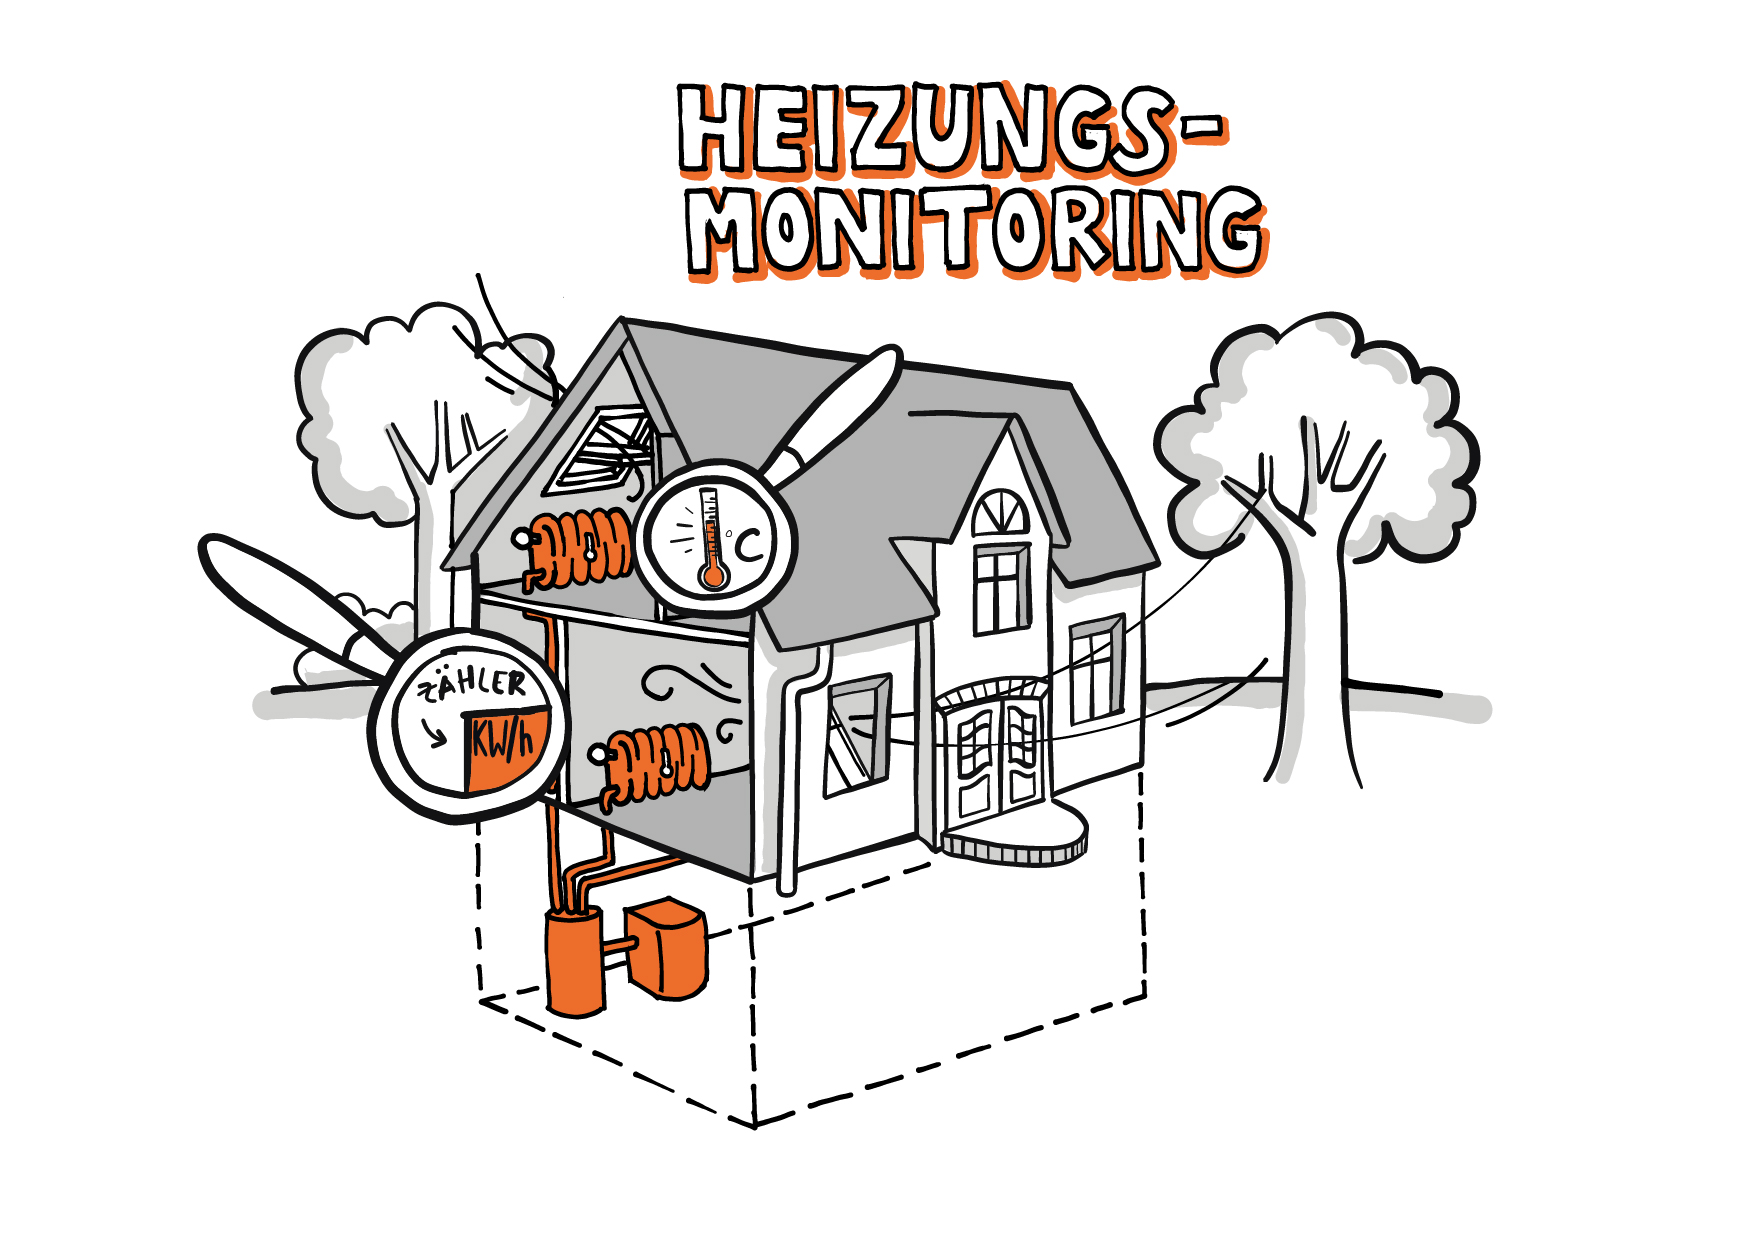 IL Uni HH - _Heizungsmonitoring_Final-01.jpg